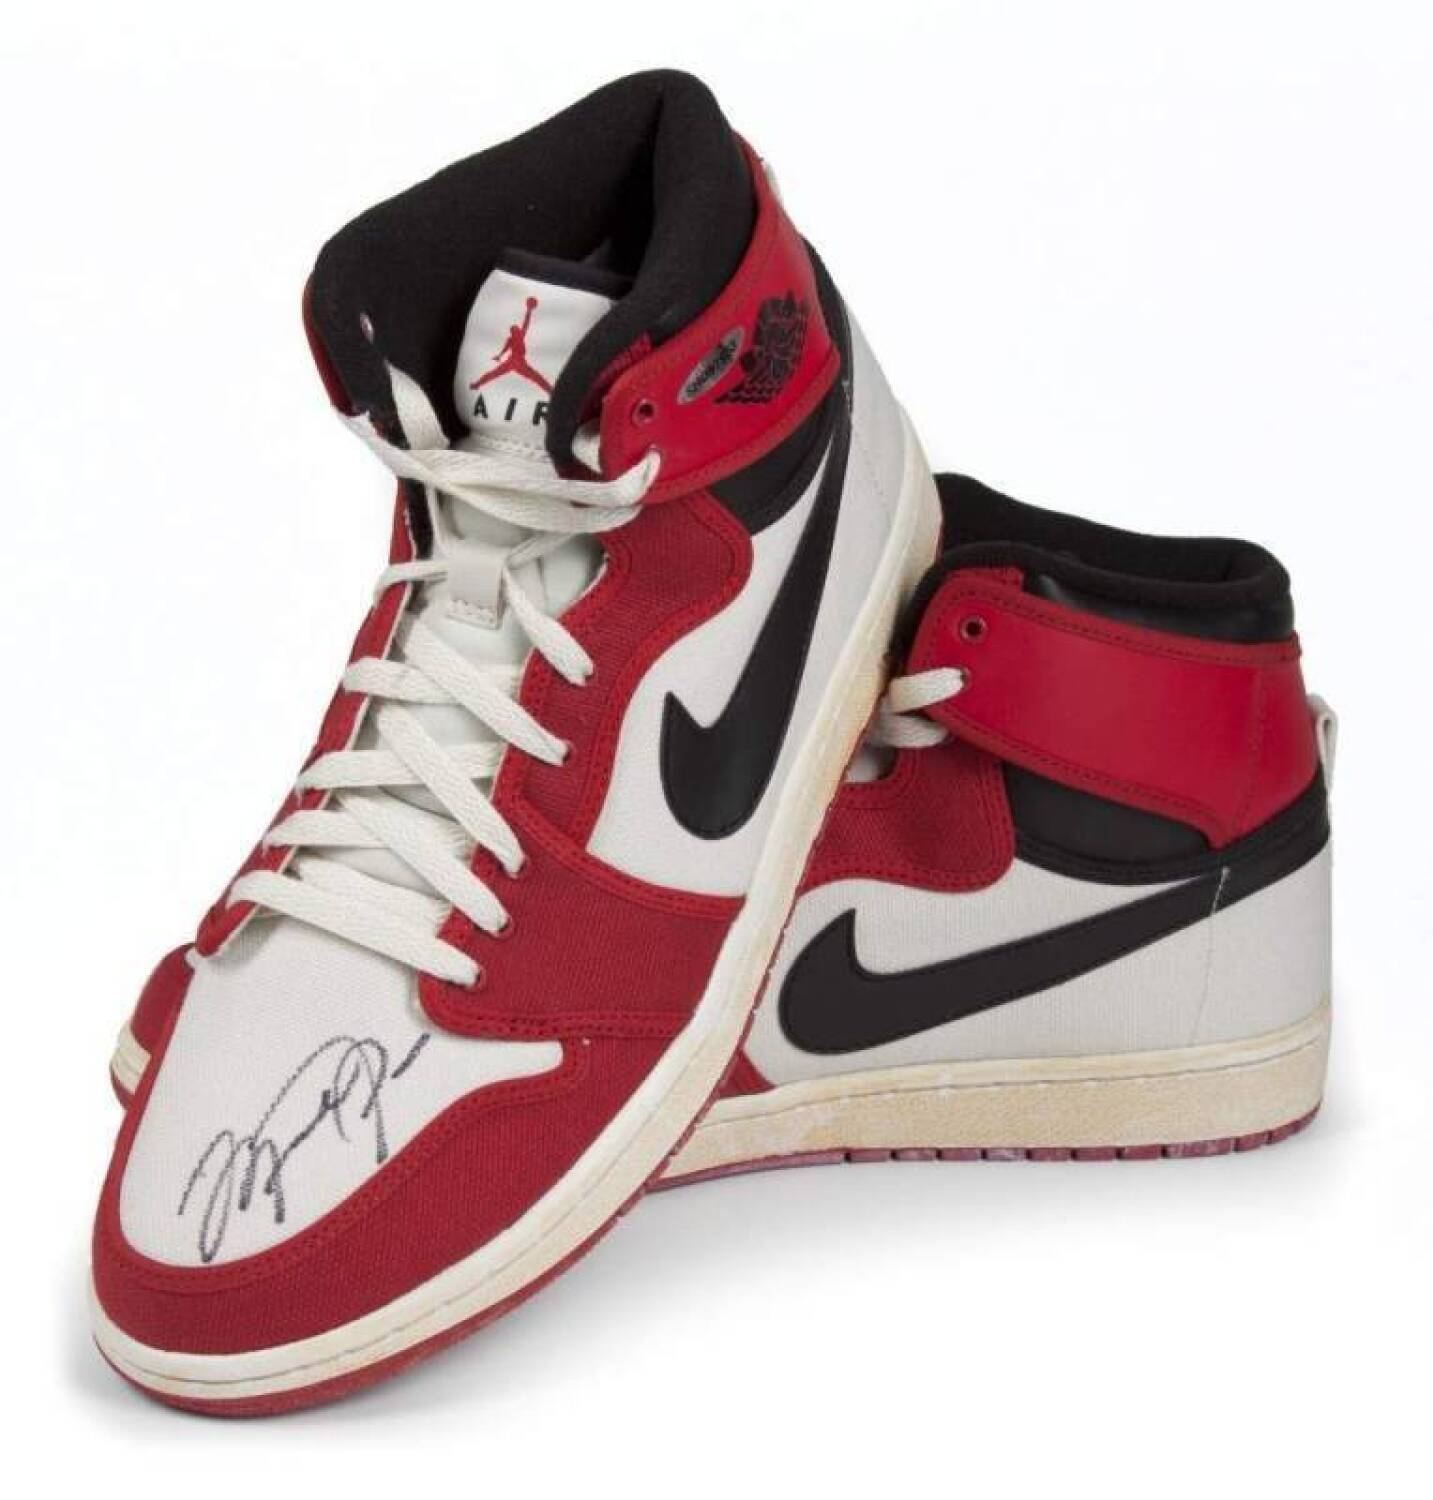 5e0fec5f52b MICHAEL JORDAN SIGNED NIKE AIR JORDAN 1 RETRO SHOE - Current price   650